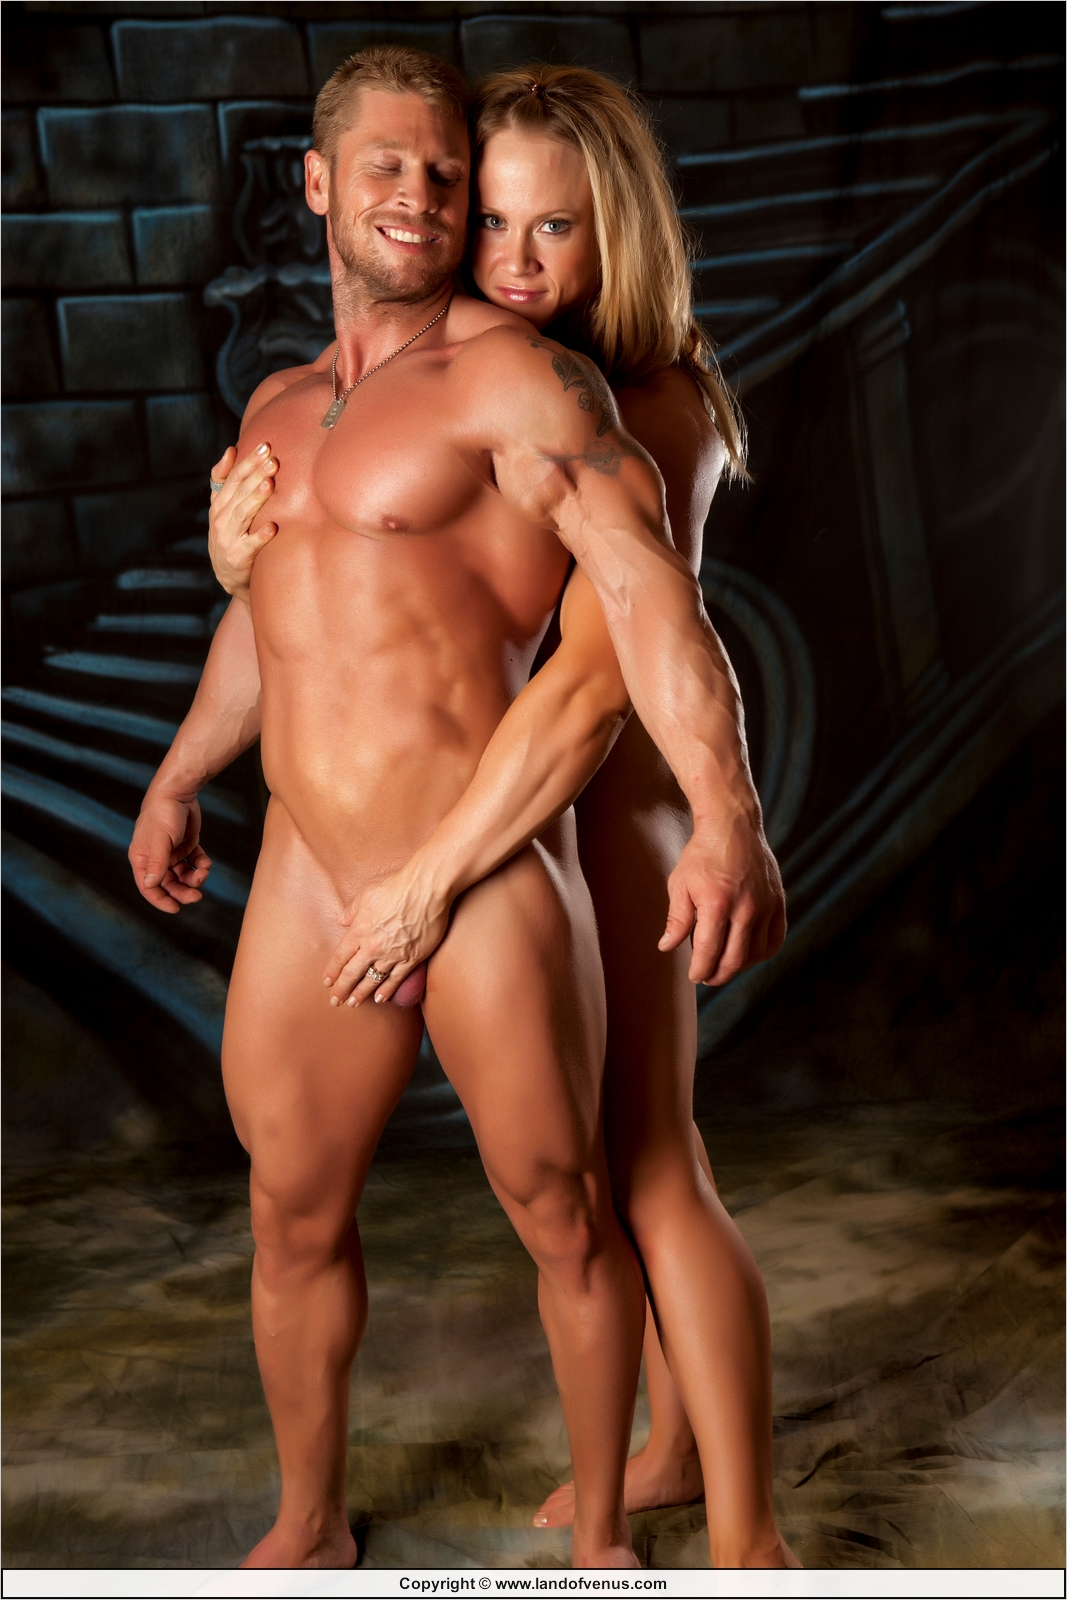 Free bodybuilder sex videos